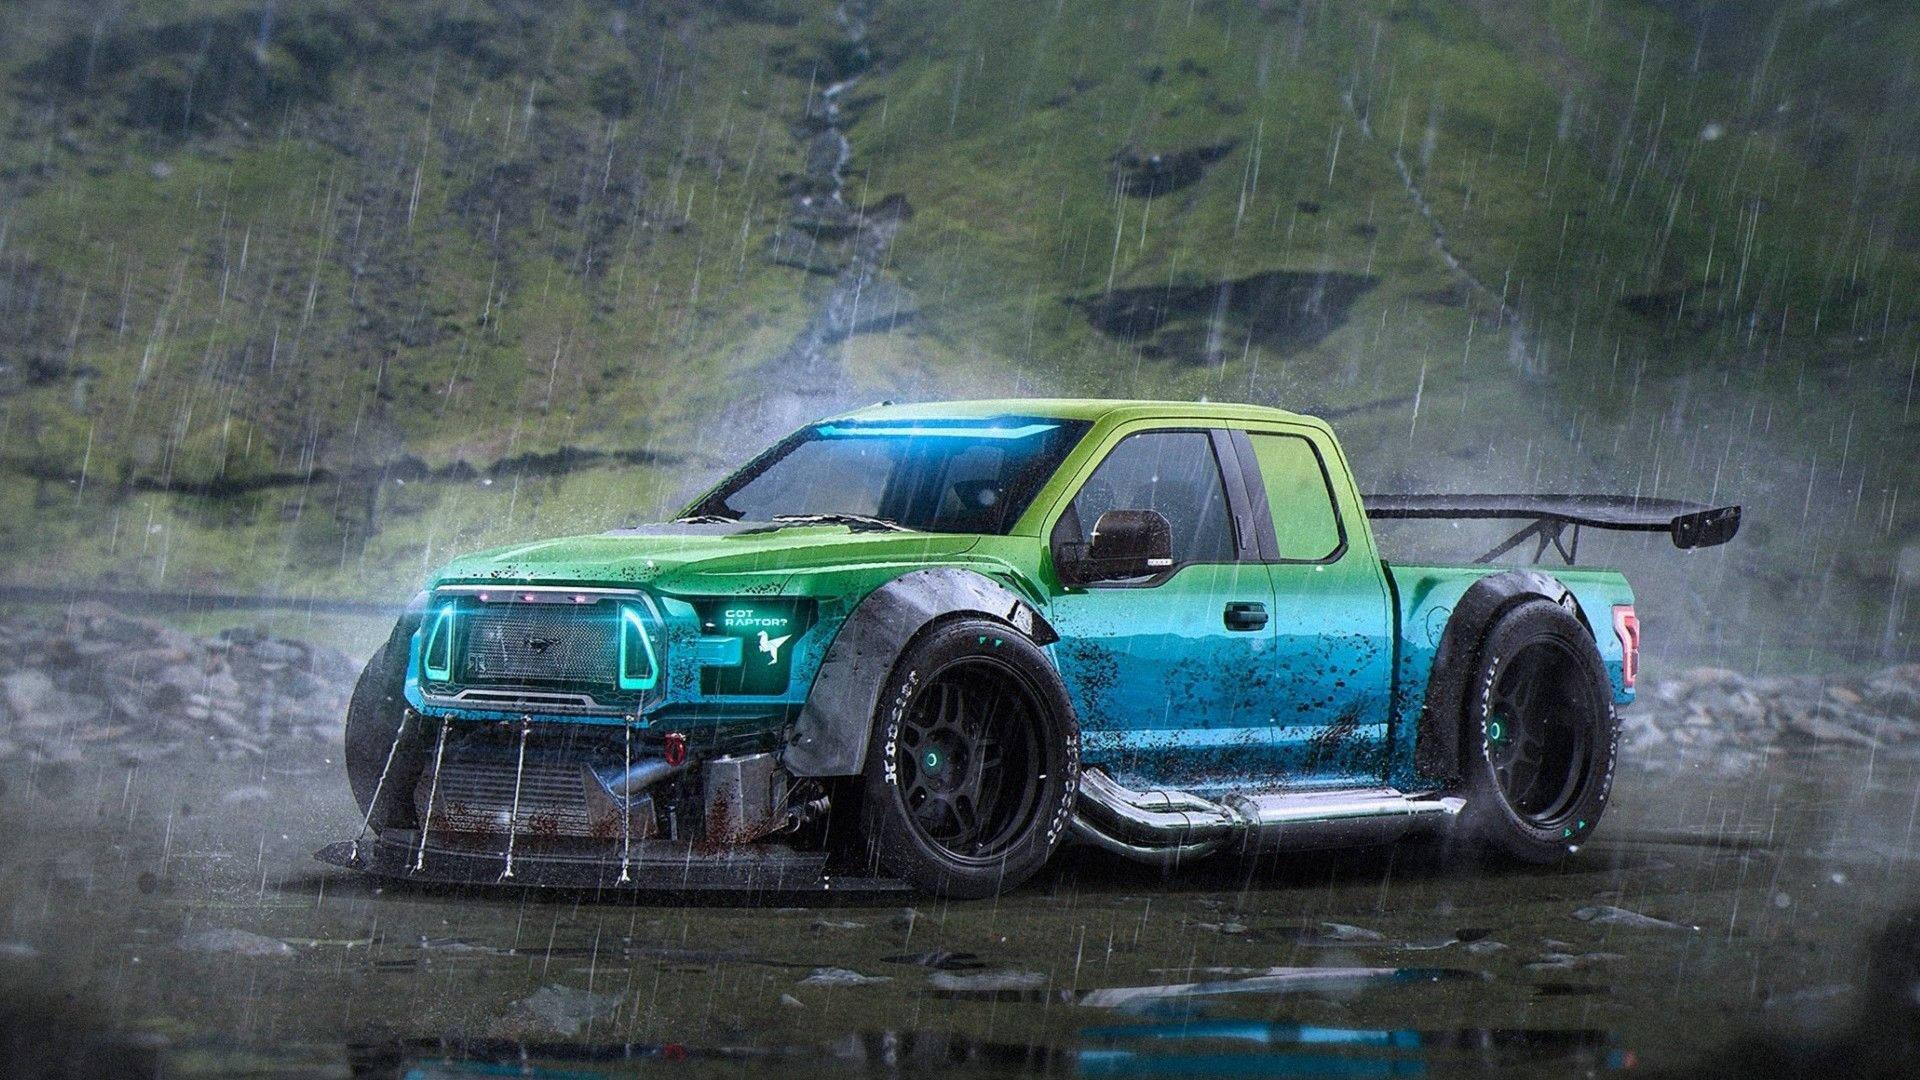 Скачать обои Ford F 150 Raptortrax Rain Car Rendering